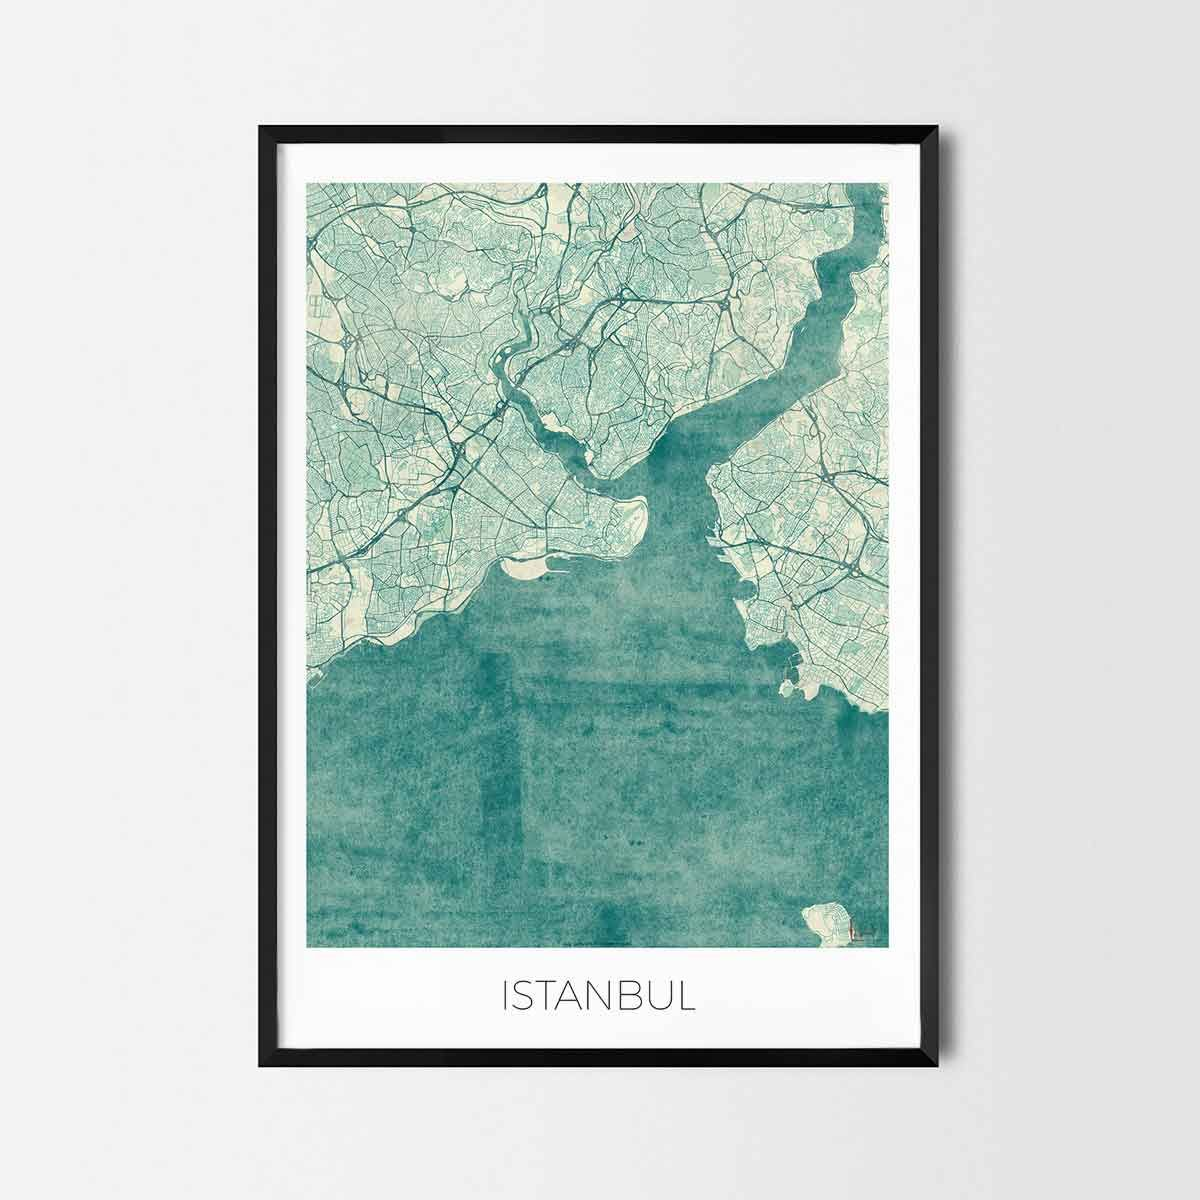 Istanbul art posters - City Art Map Posters and Prints   Art posters ...